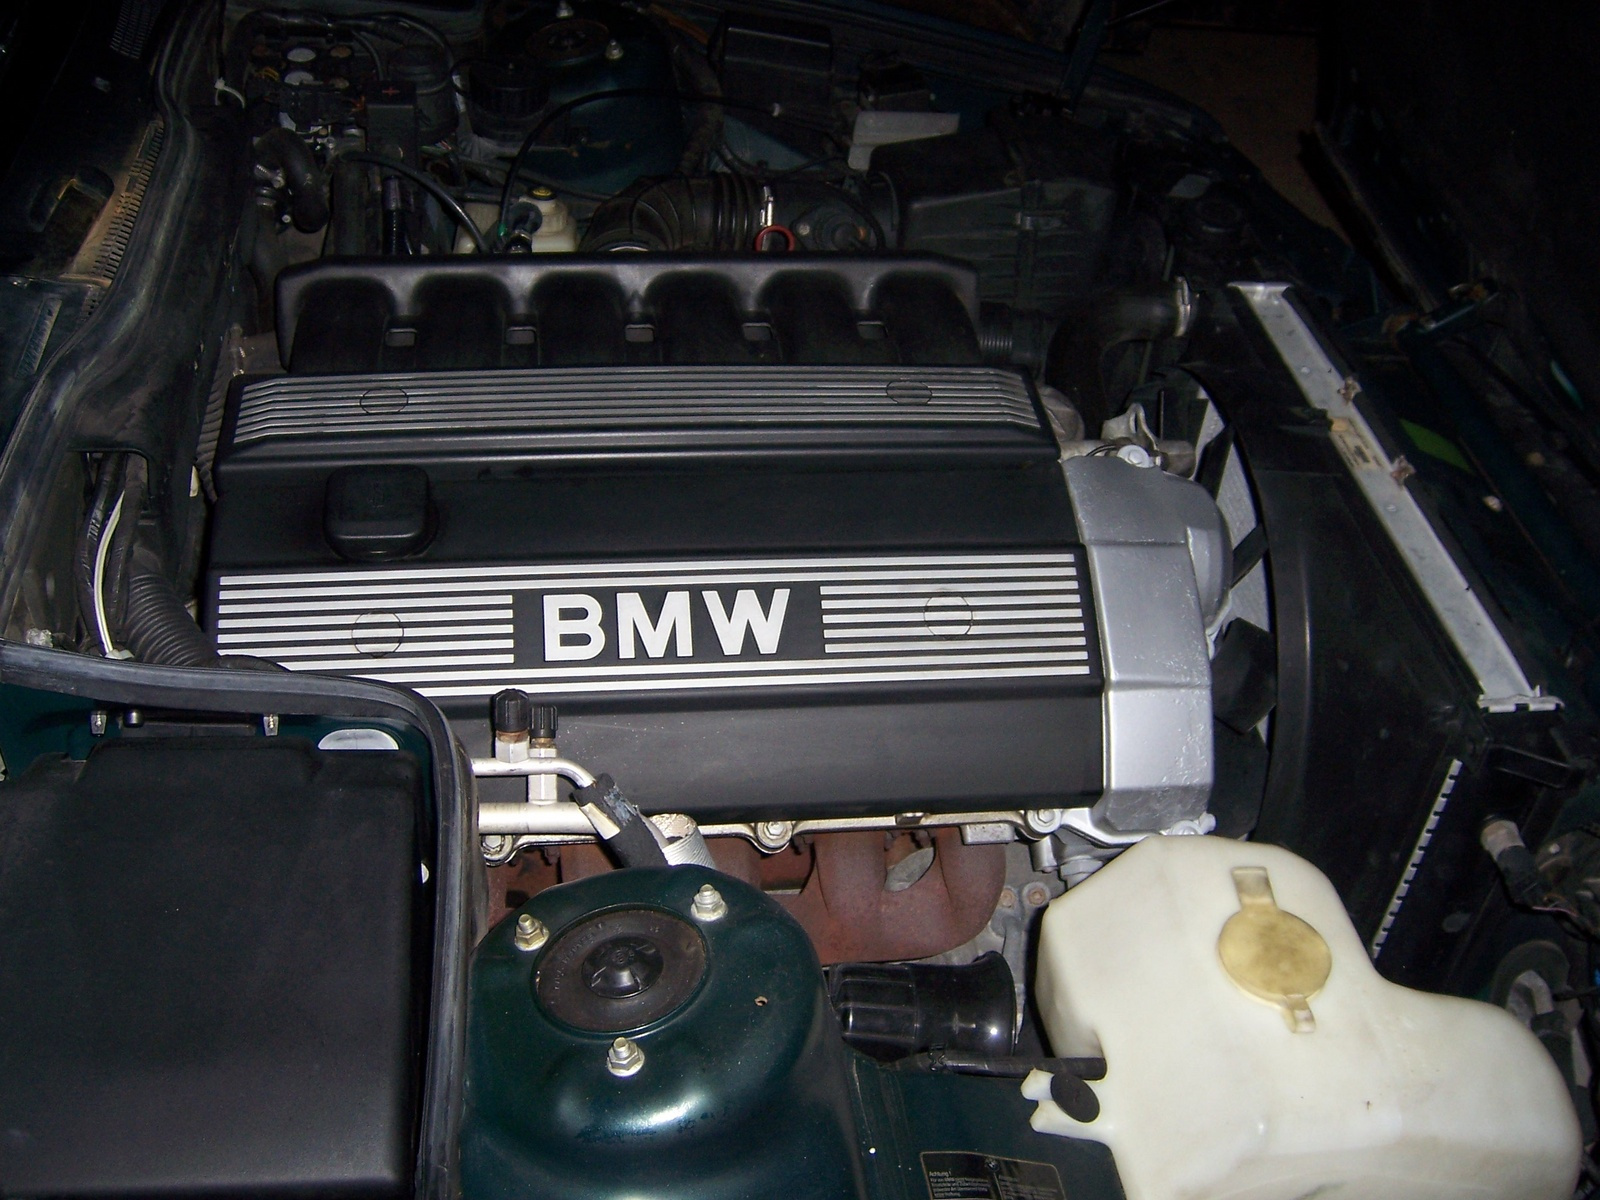 2007 BMW 5 Series, Engine bay, engine